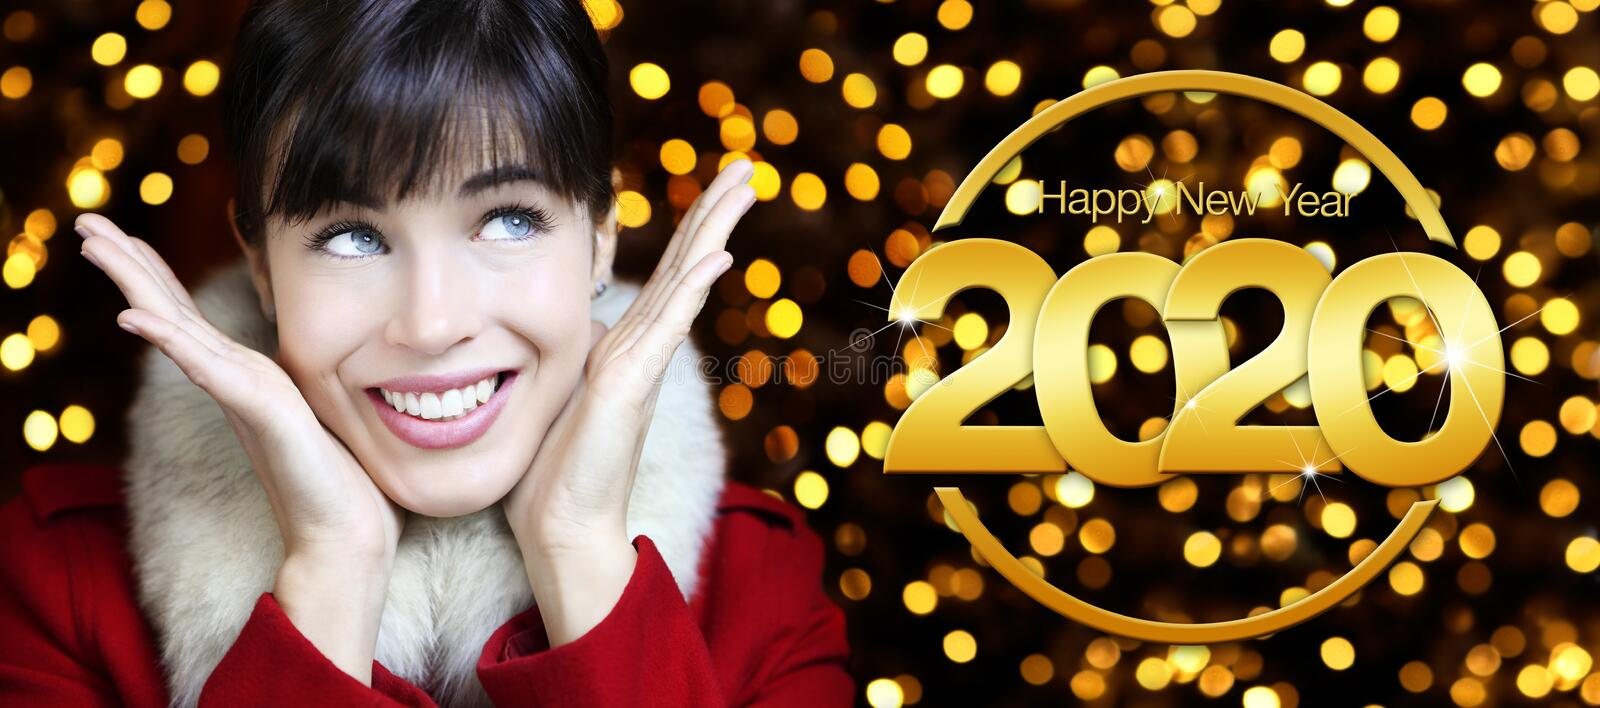 Concept of merry christmas and happy new year, surprise woman isolated on blurred lights background with ball and 2020 text royalty free stock photo